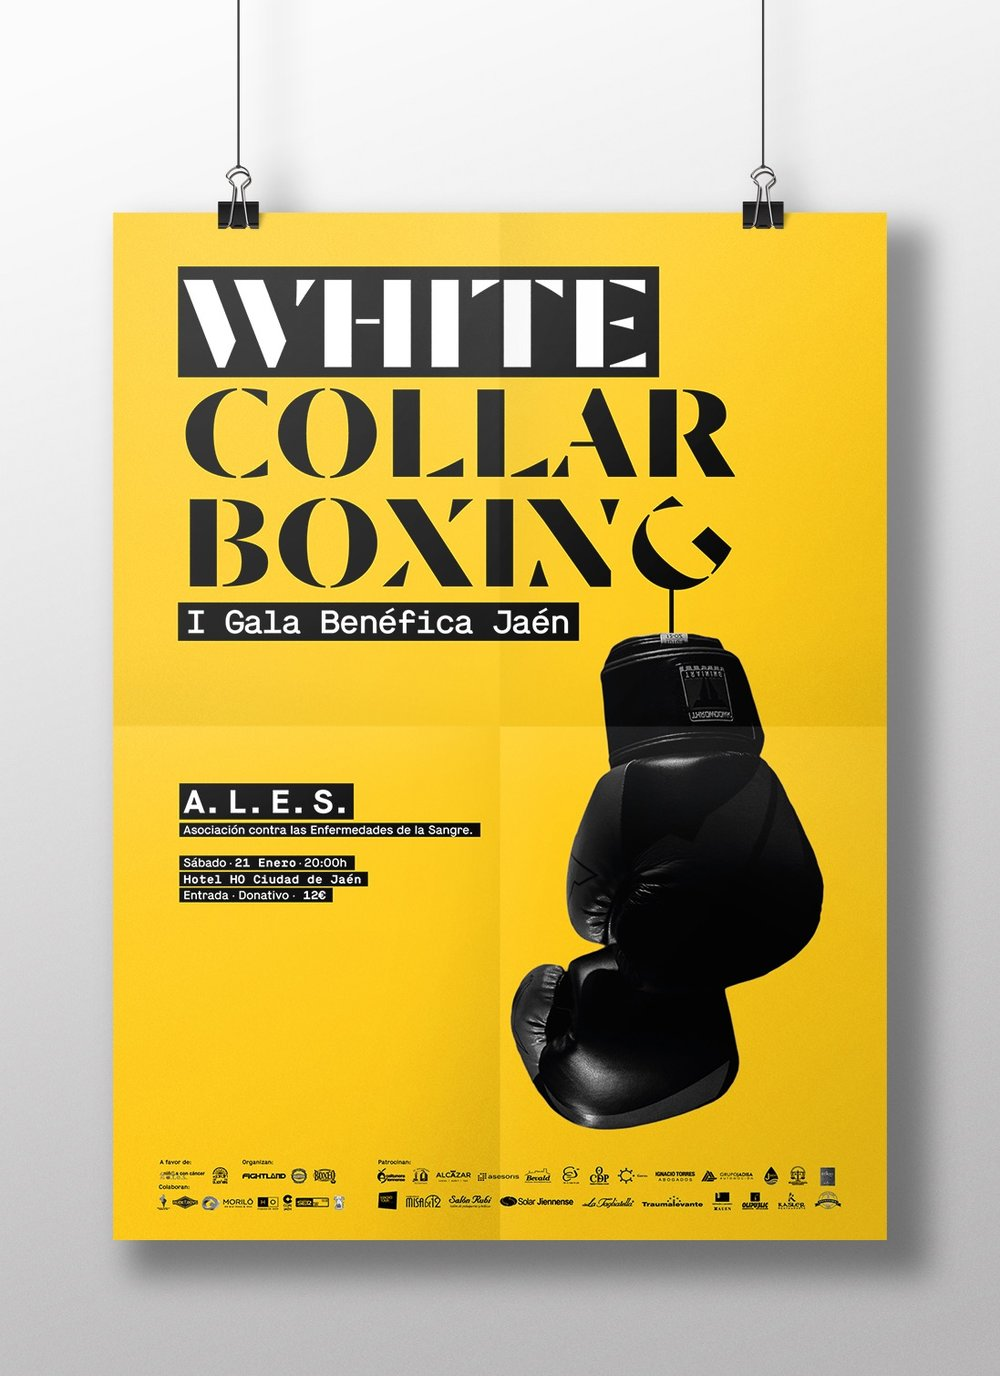 White collar boxing.jpg